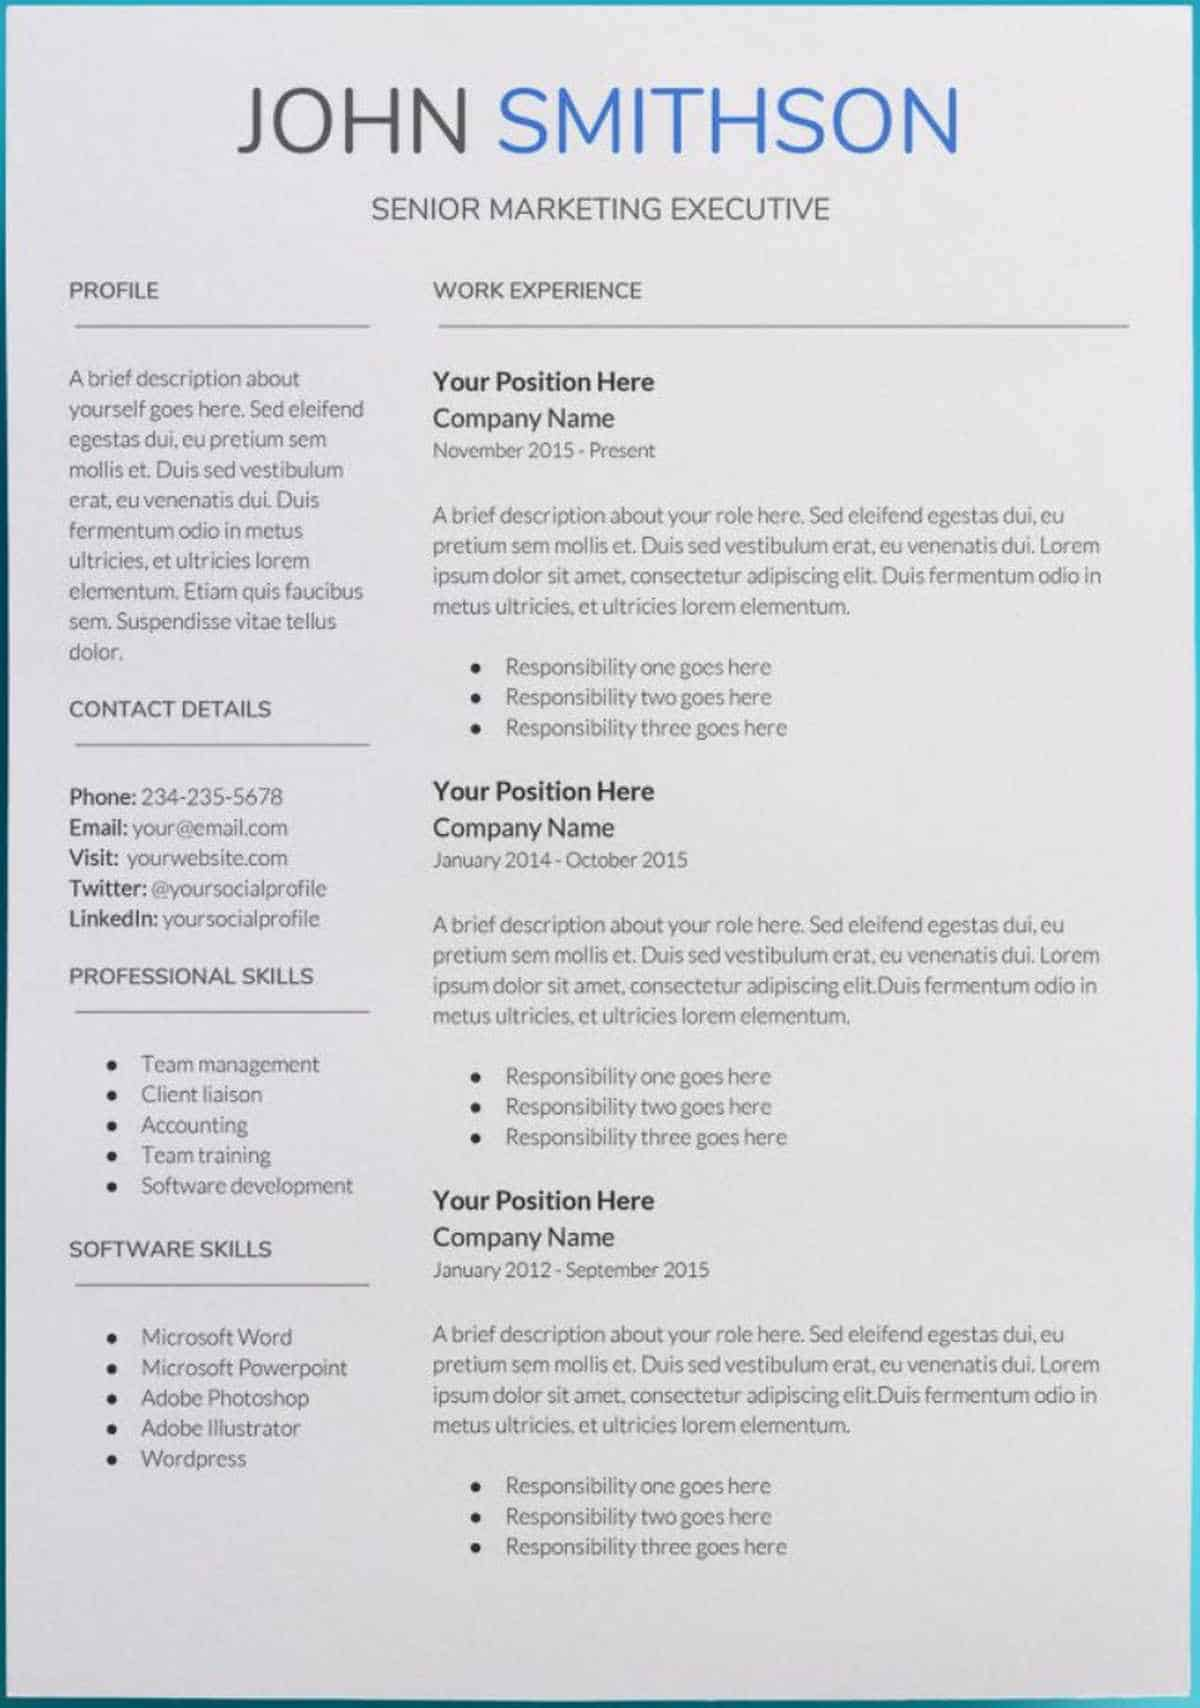 printable resume templates 30 docs resume templates downloadable pdfs 24080 | Saturn Google Docs Resume Template google docs resume template free